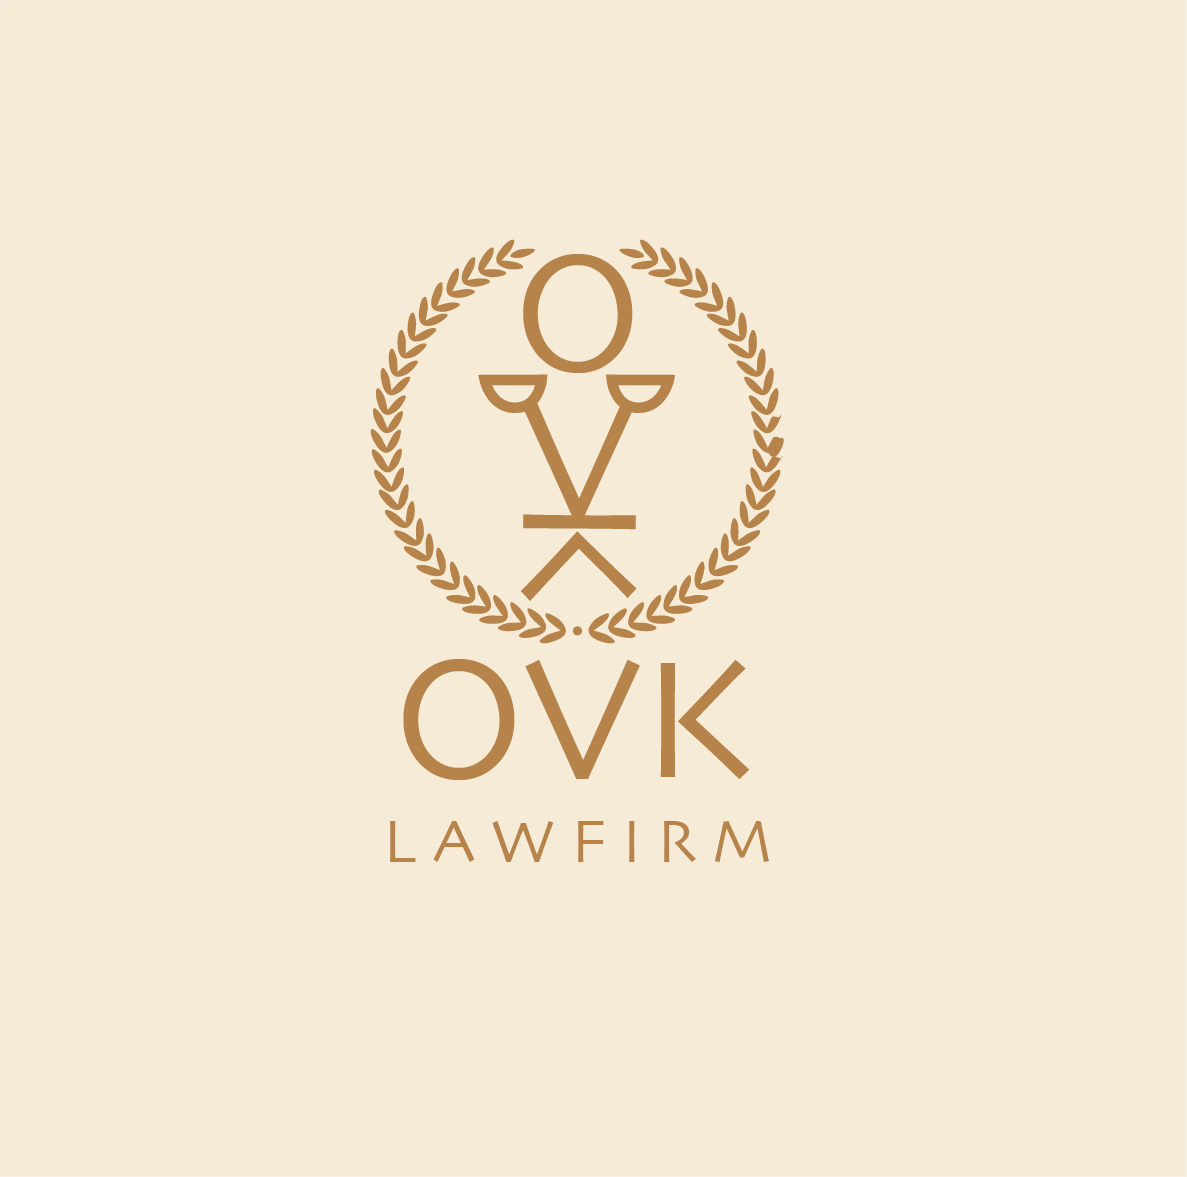 OVK LAW FIRM